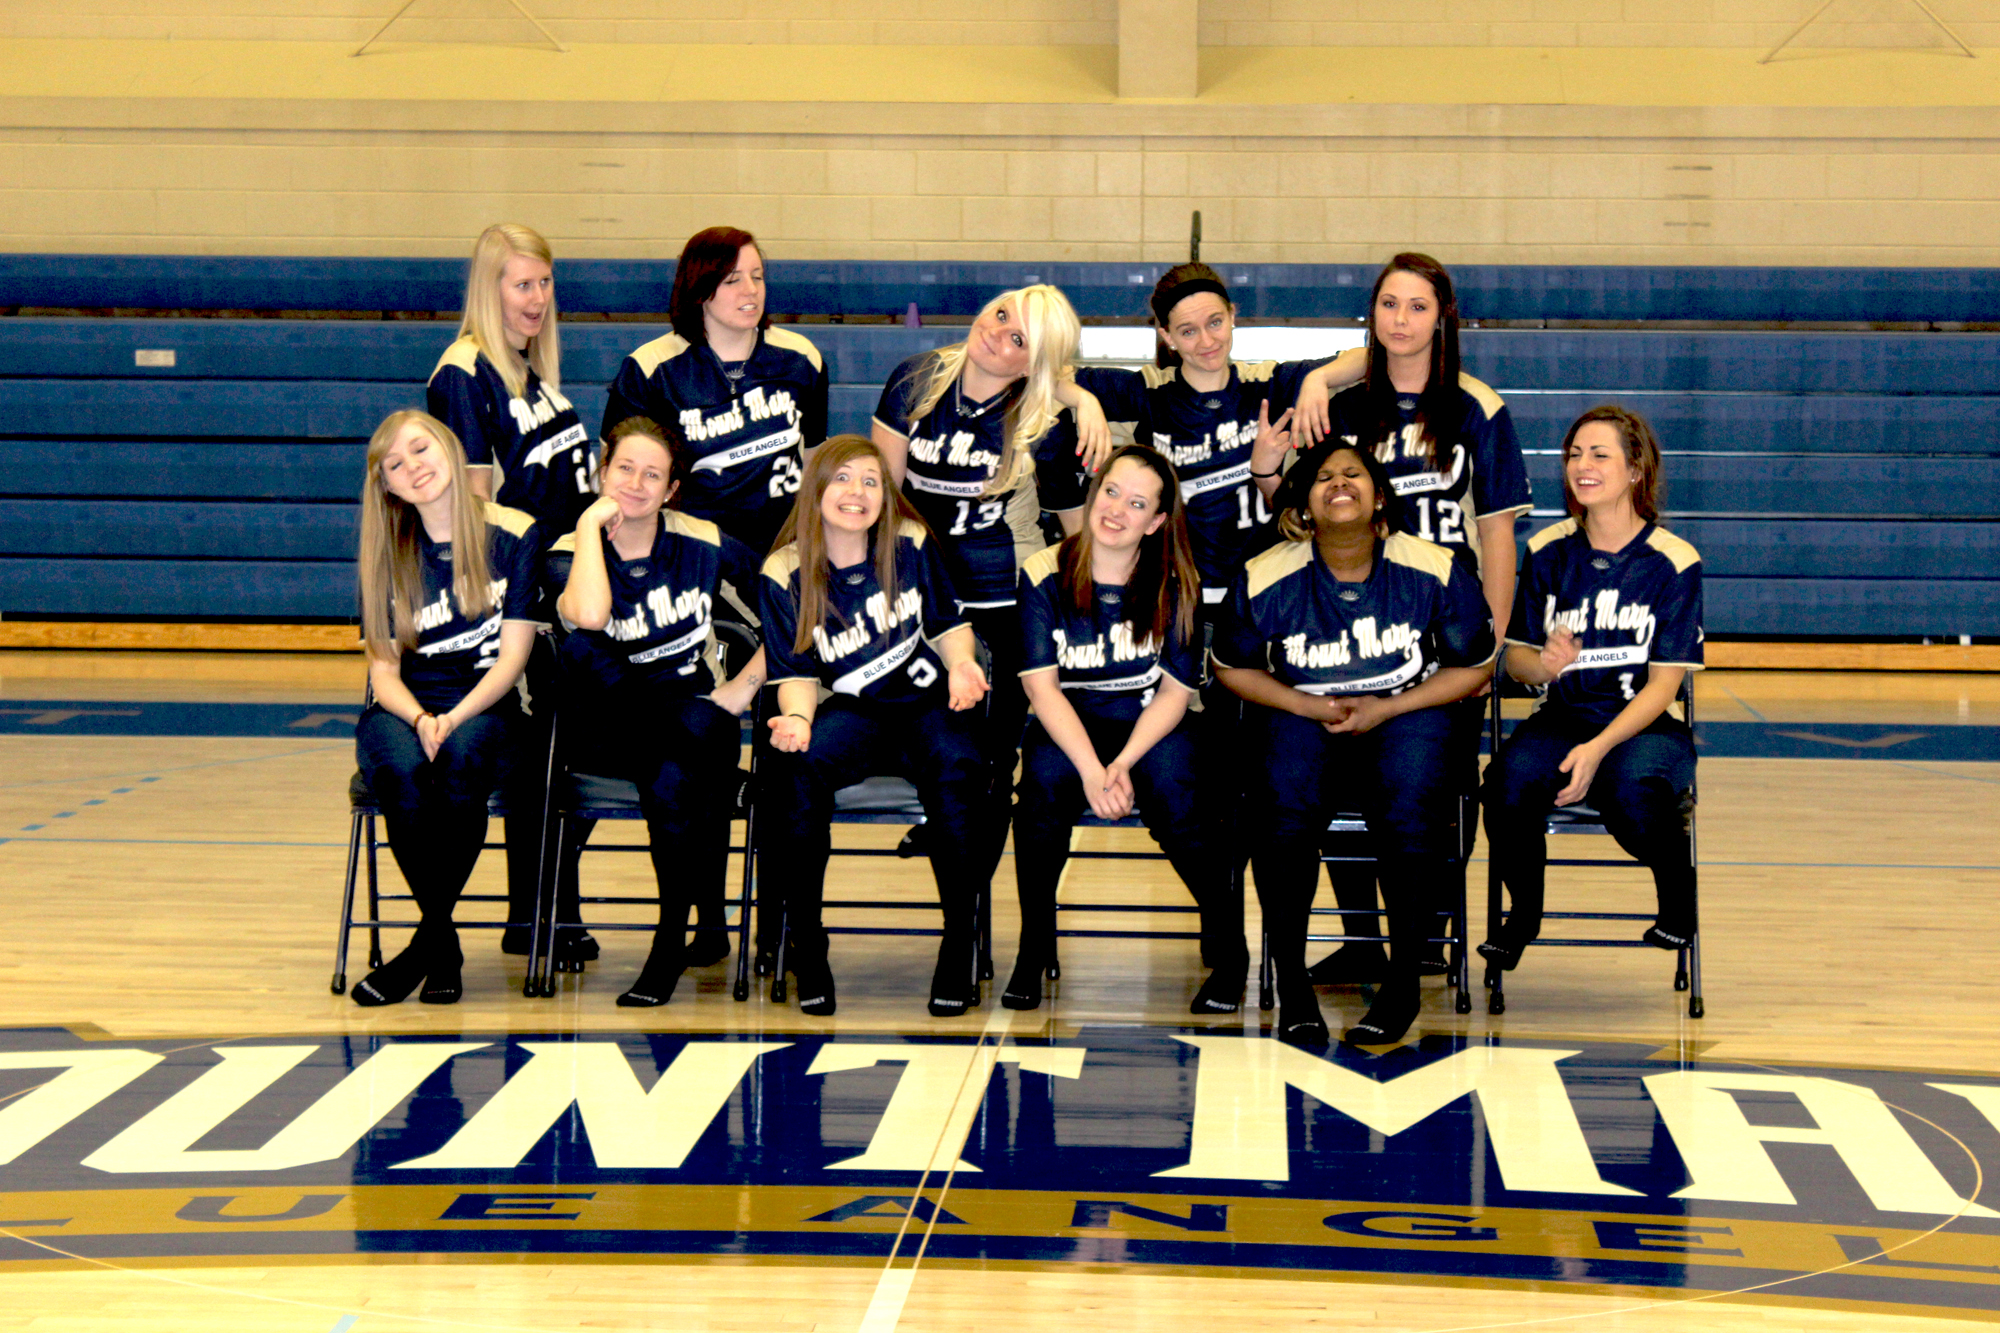 mmu-funny-softball-edited